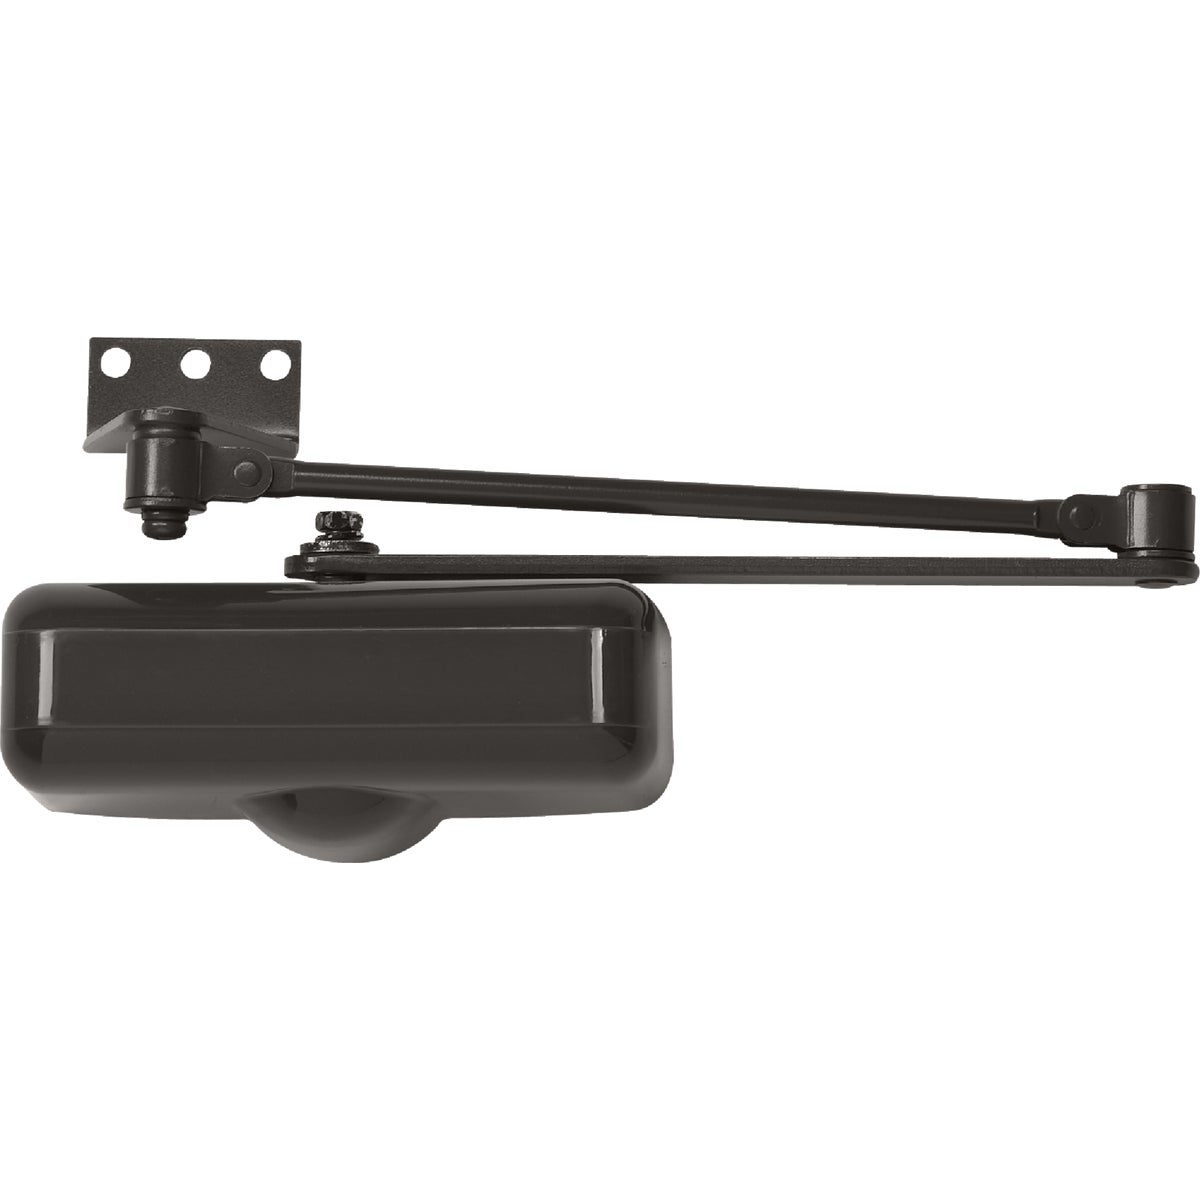 BROWN RES DOOR CLOSER - DC100079 by Tell Mfg Inc